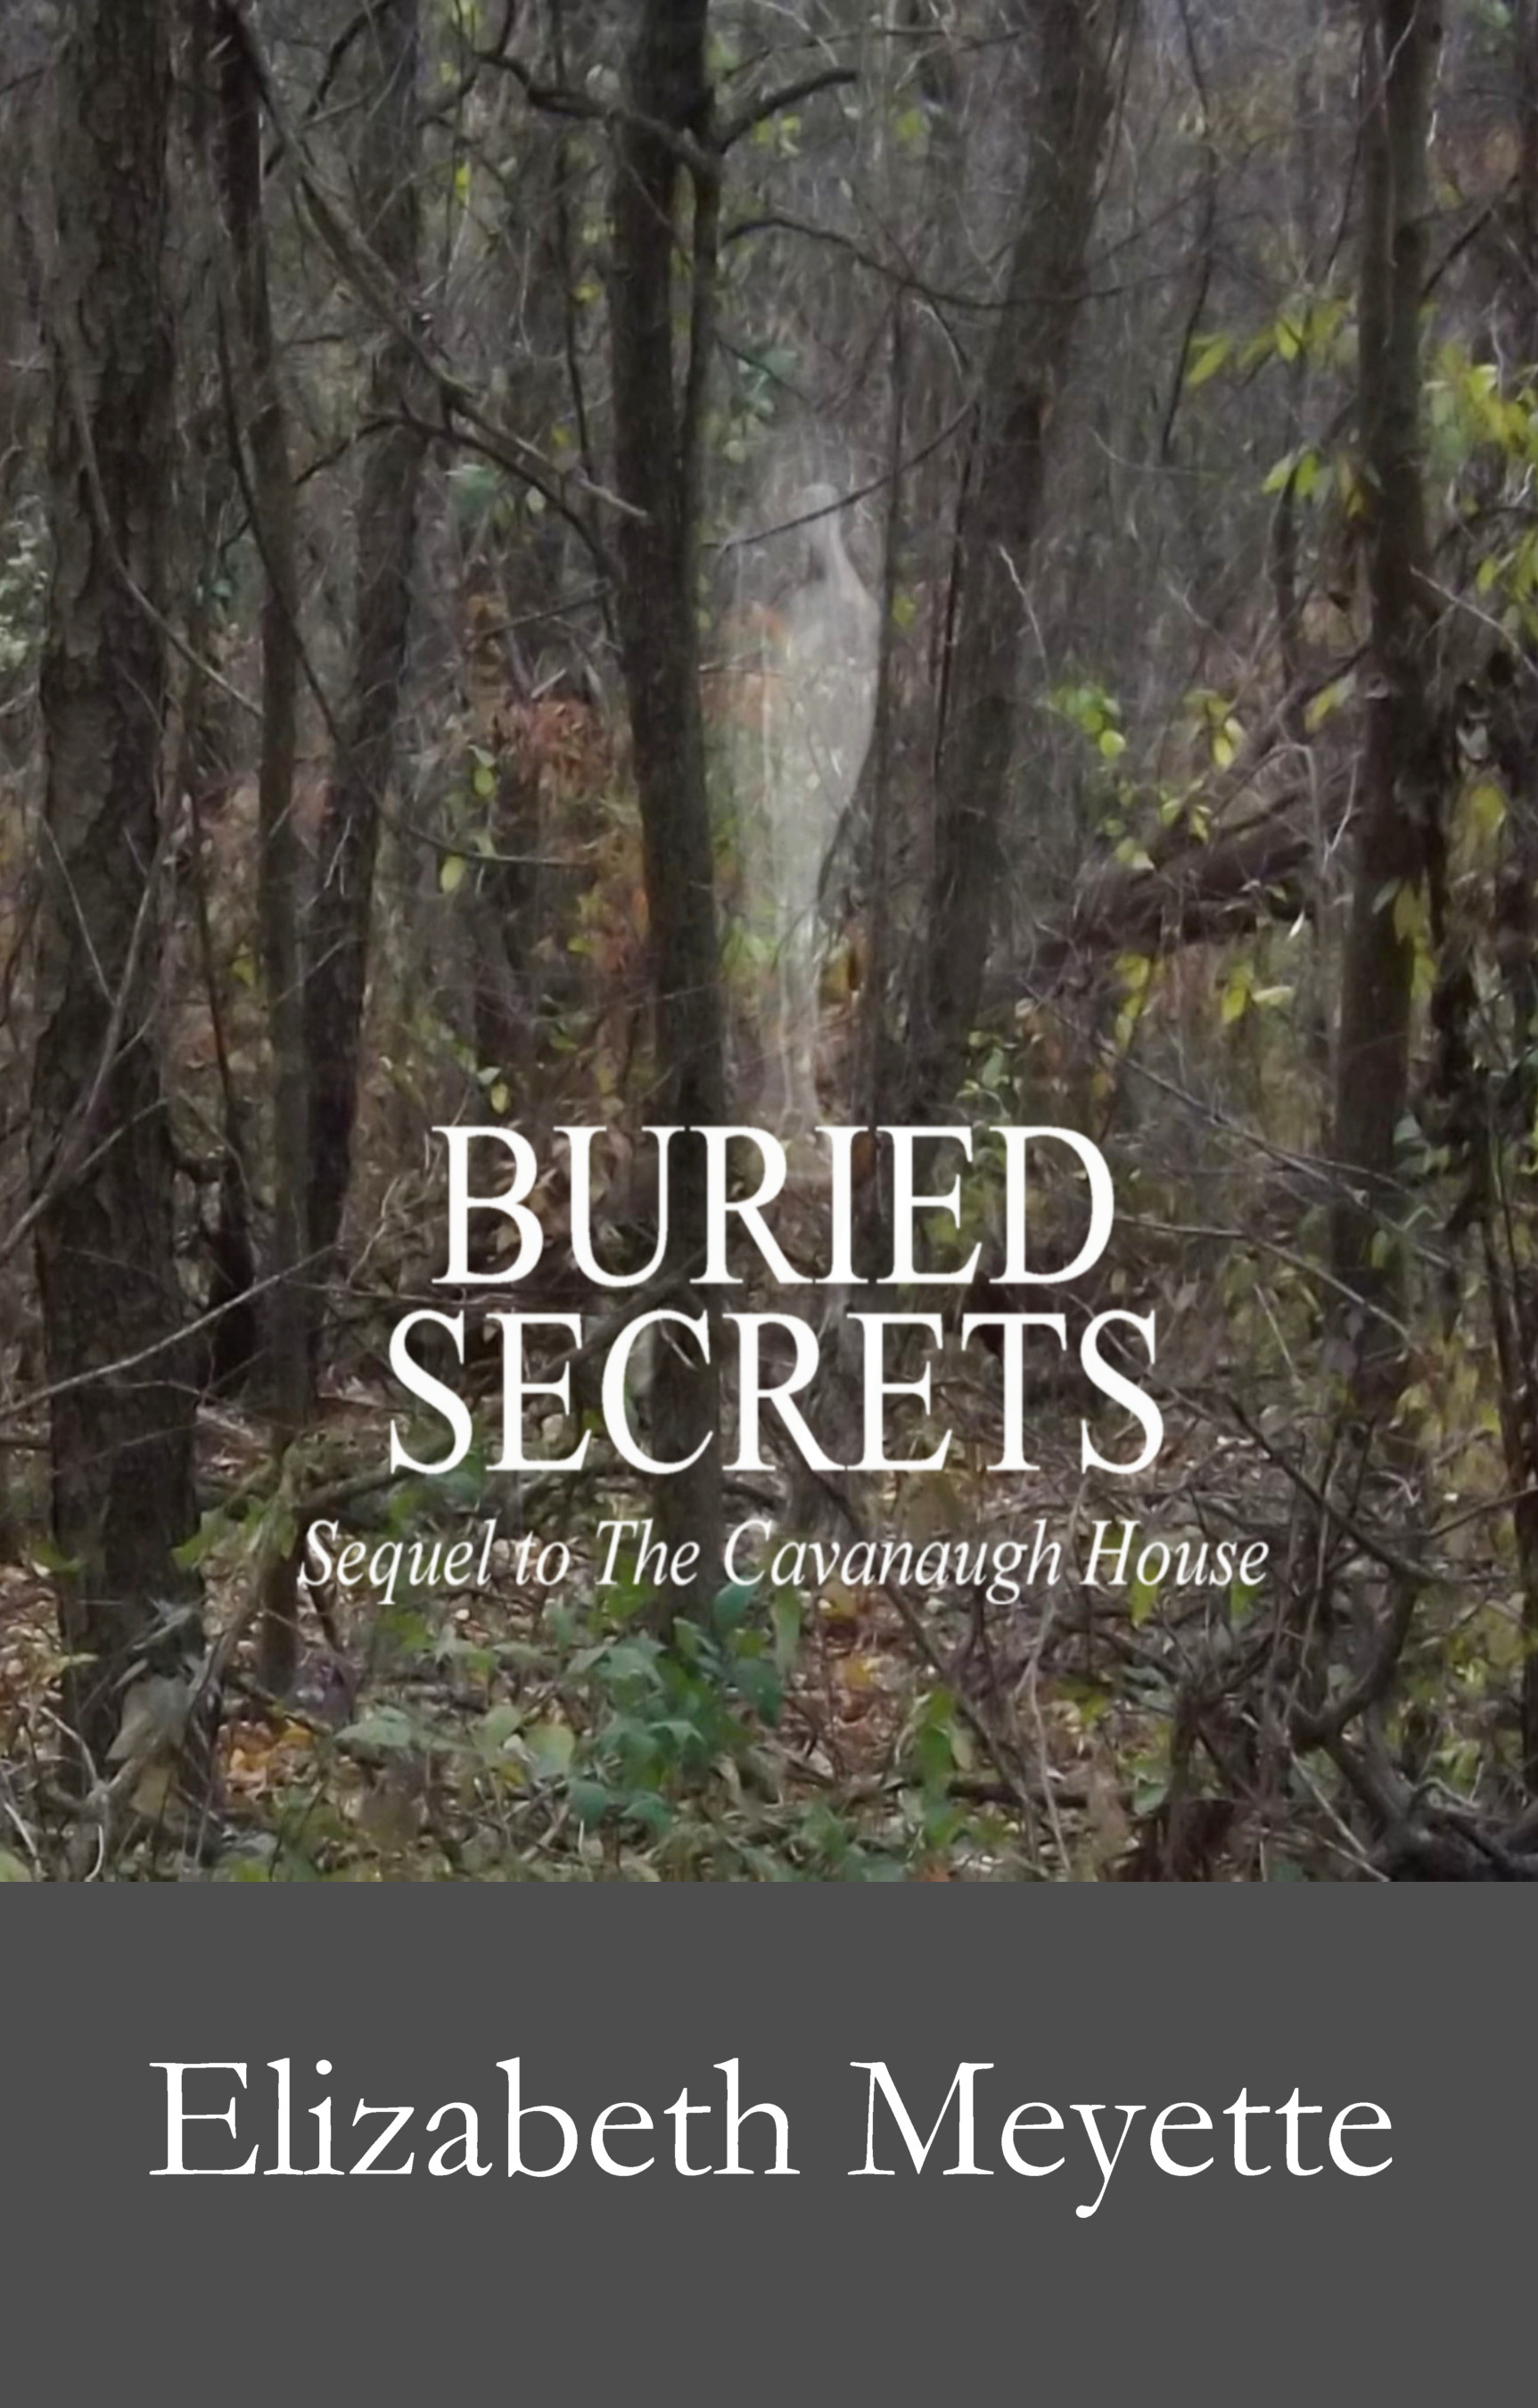 Buried Secrets: Sequel to The Cavanaugh House